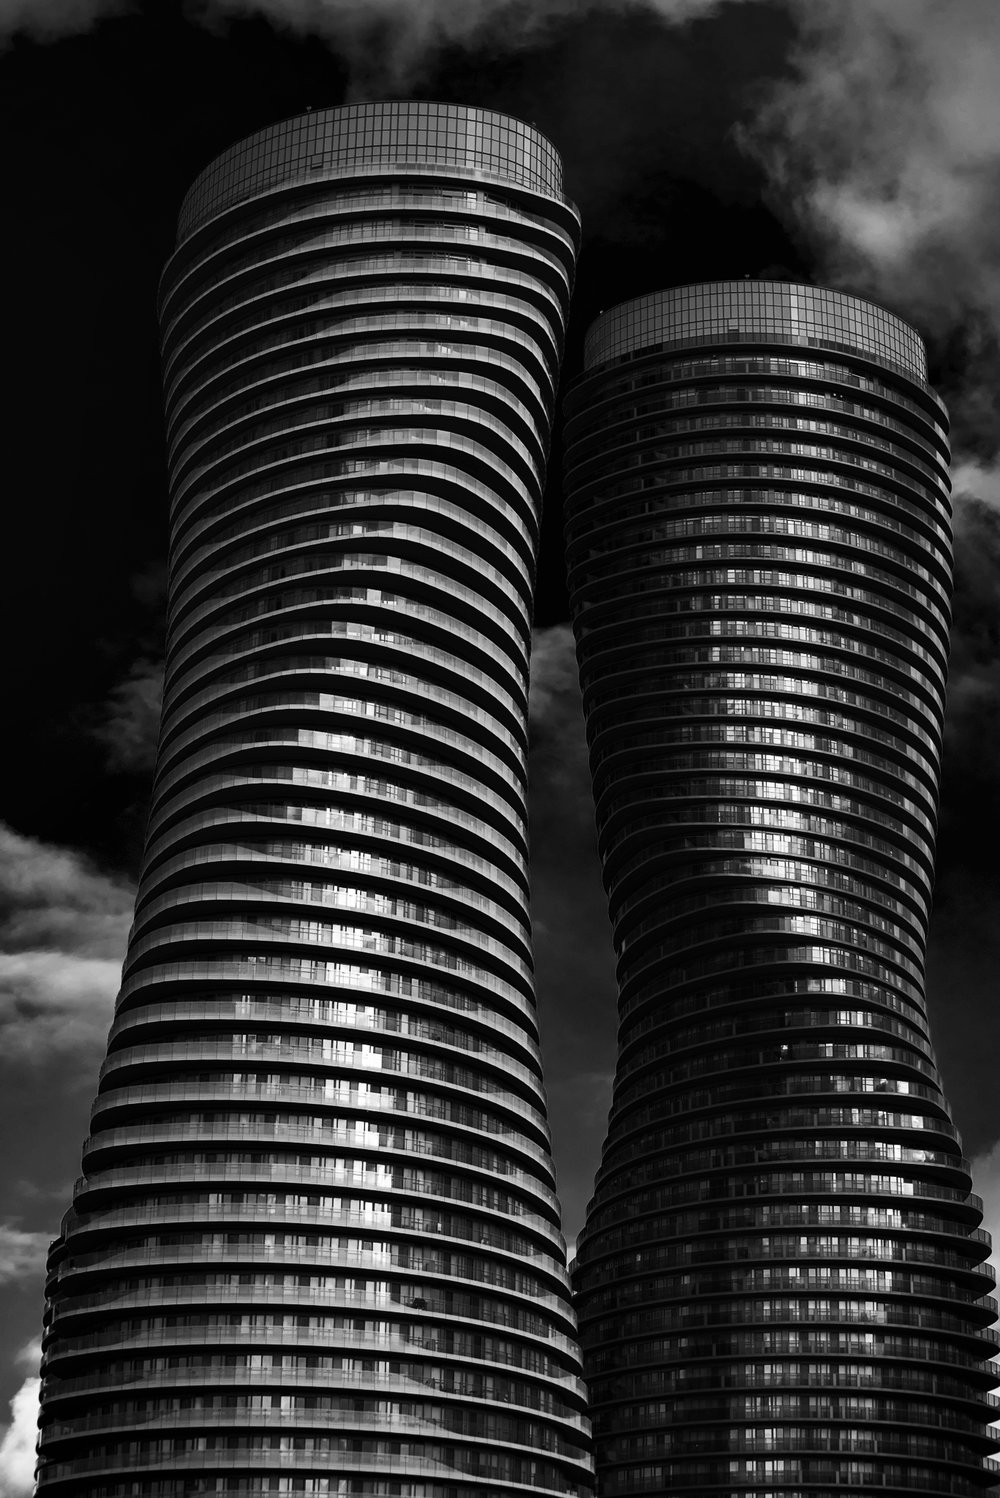 Marilyn Monroe Towers - Absolute World - Marek Michalek 014.JPG